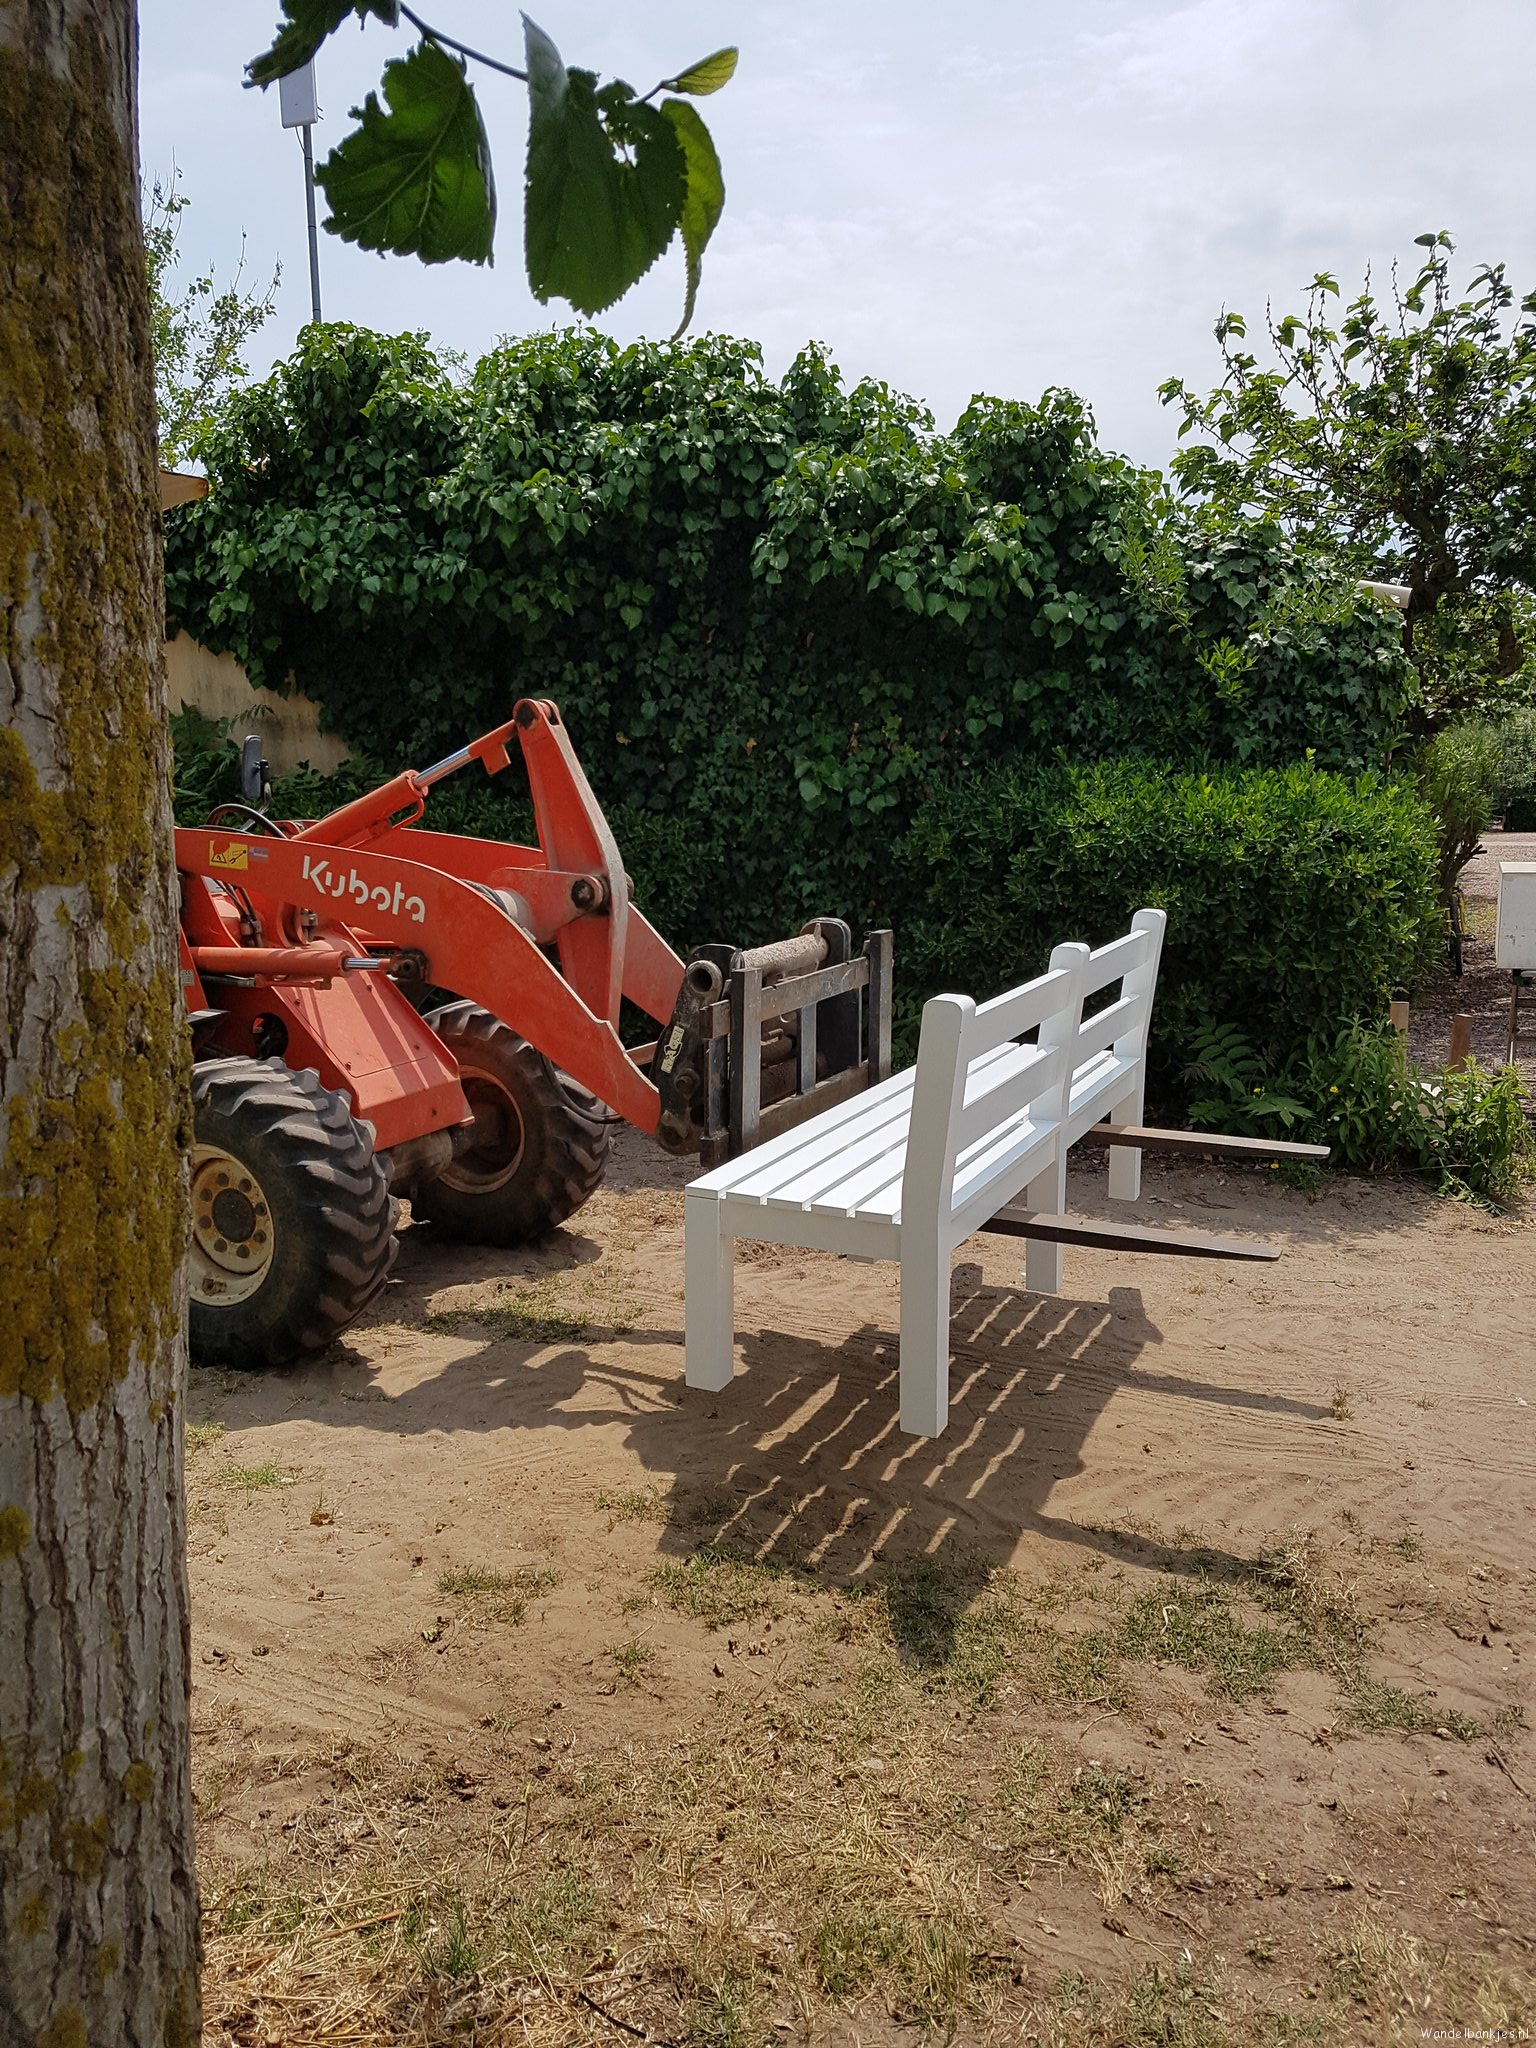 rt-gertdewit-walking benches-in-the-making-marseillan-plage-france-https-t-co-qbqti0fjrv